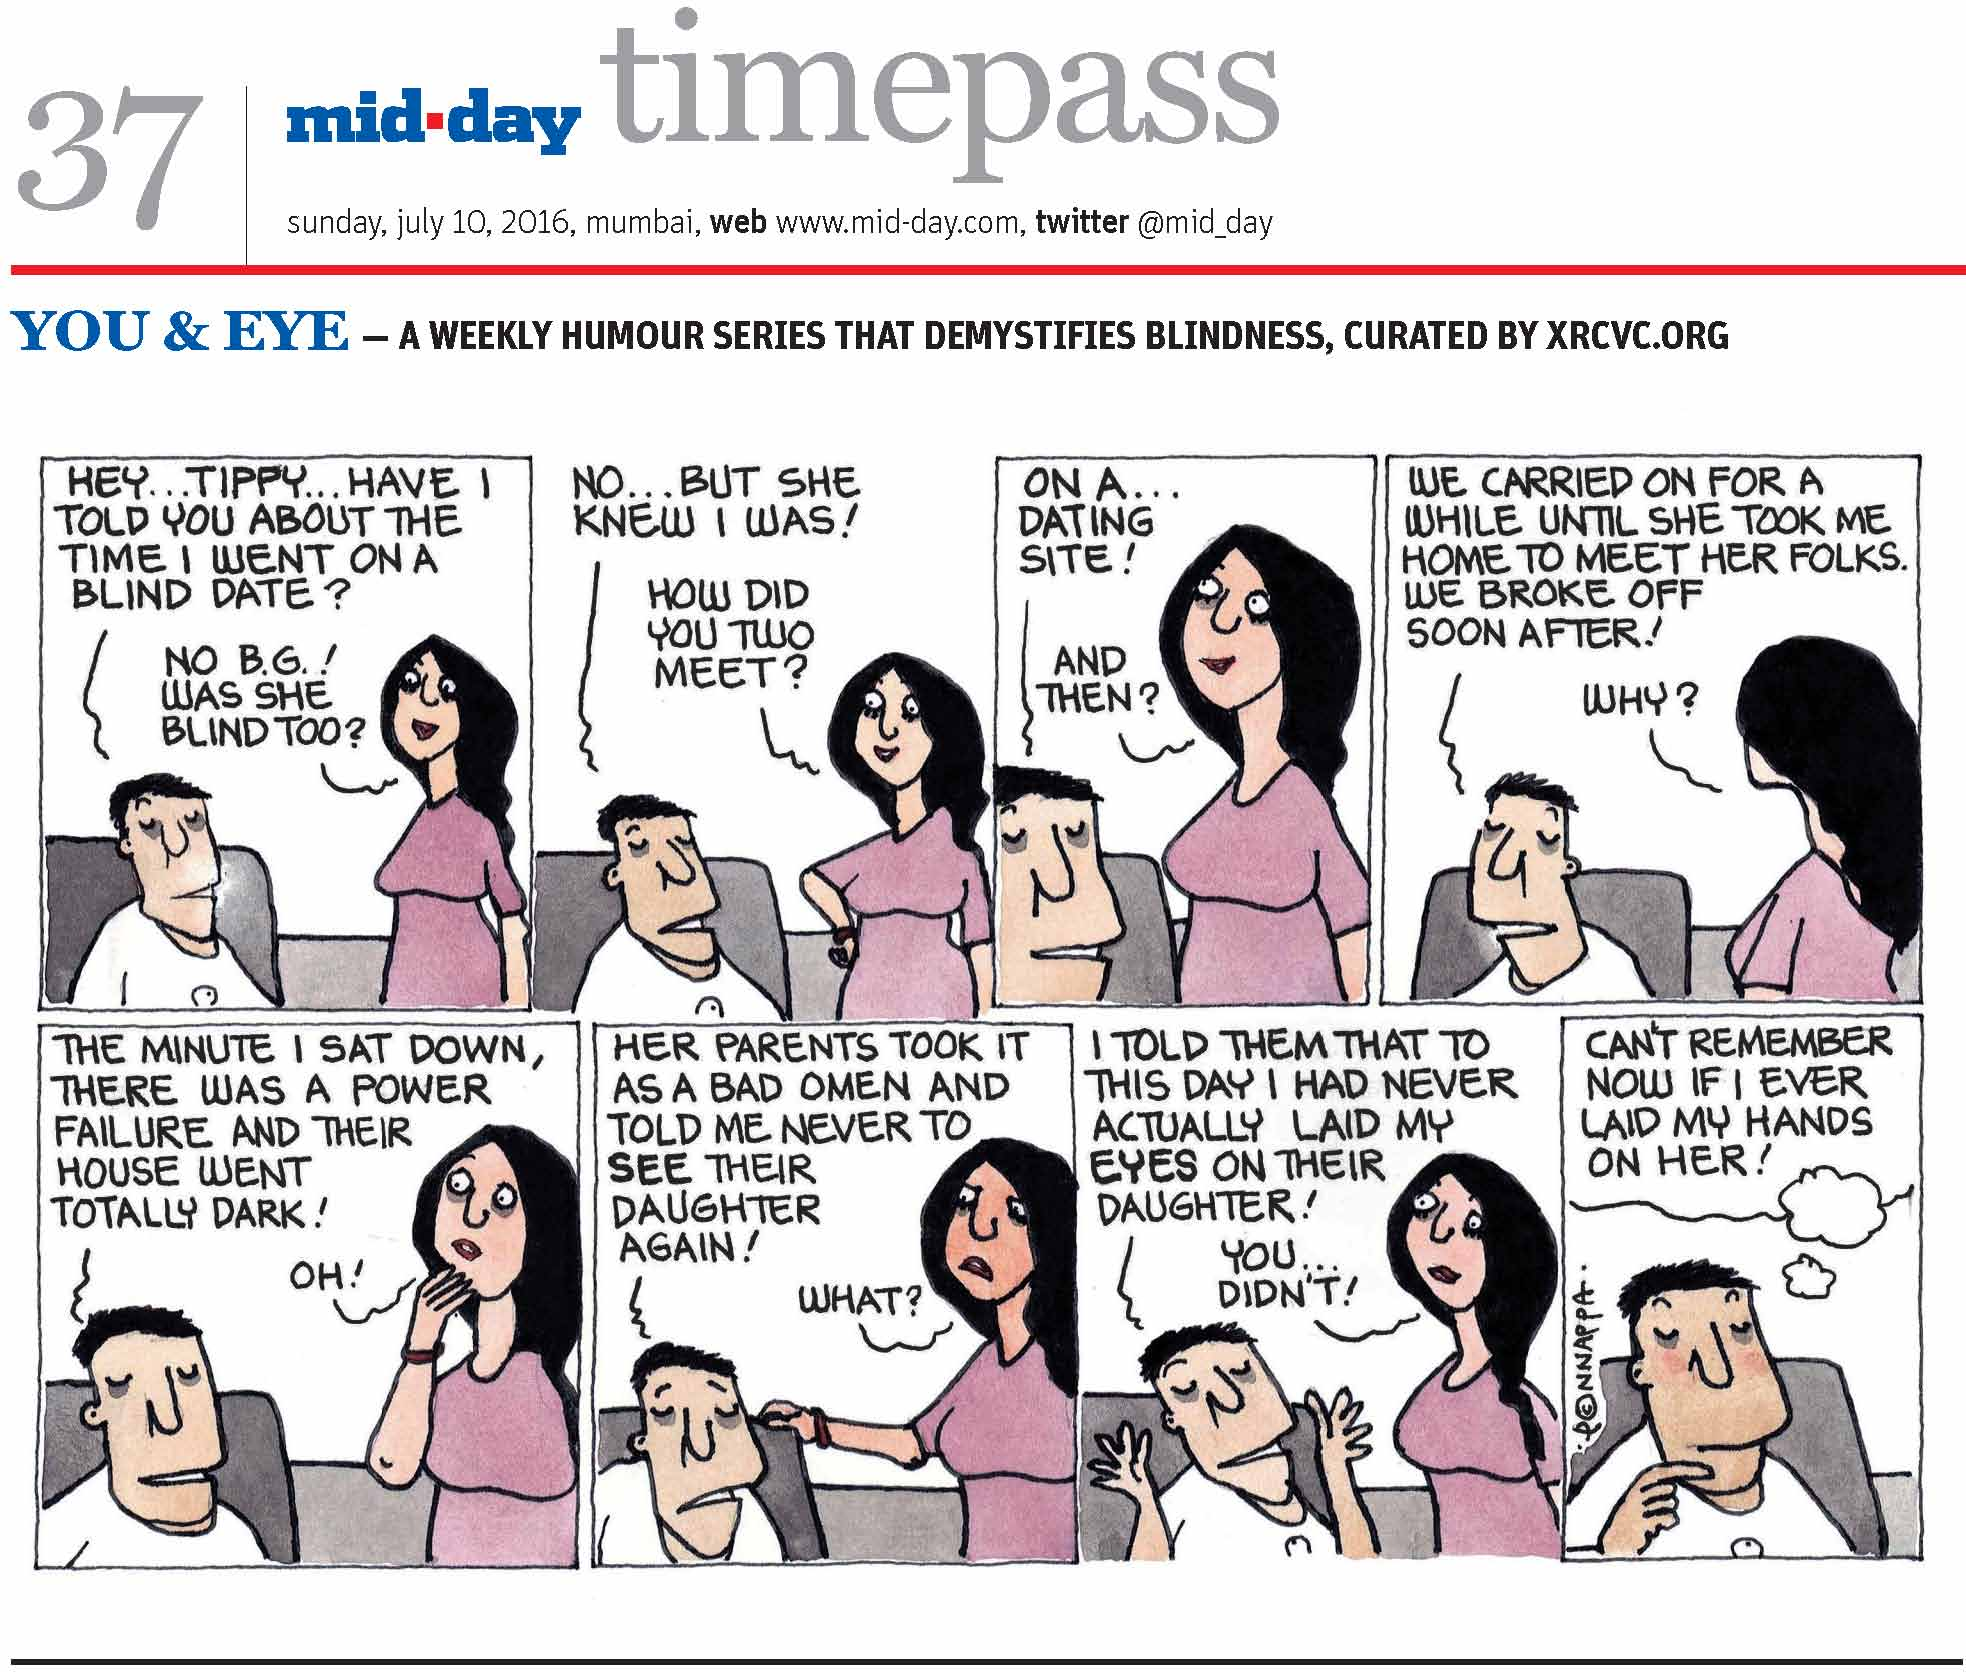 Page 37 mid-day timepass, sunday, july 10, 2016, mumbai, web: www.mid-day.com, twitter @mid_day, YOU & EYE – A WEEKLY HUMOUR SERIES THAT DEMYSTIFIES BLINDNESS, CURATED BY XRCVC.ORG Image description: A cartoon strip with 8 frames… Frame 1: (The visually impaired man – BG – sitting on a chair while his friend – Tippy – stands to his left as they speak) BG: Hey… Tippy… Have I told you about the time I went on a blind date? Tippy: No B.G.! Was she blind too? Frame 2: (Both continue talking) BG: No… but she knew I was! Tippy: How did you two meet? Frame 3: (A close-up of both persons as they continue talking) BG: On a… dating site! Tippy: And then? Frame 4: (Both continue talking) BG: We carried on for a while until she took me home to meet her folks. We broke off soon after! Tippy: Why? Frame 5: (BG continues talking while Tippy touches her right hand to her chin in surprise) BG: The minute I sat down, there was a power failure and their house went totally dark! Tippy: Oh! Frame 6: (Both frown as they continue talking) BG: Her parents took it as a bad omen and told me never to 'see' their daughter again! Tippy: What? Frame 7: (Both smile as they continue talking) BG: I told them that to this day I had never actually laid my 'eyes' on their daughter! Tippy: You… didn't! Frame 8: (A close-up of BG blushing as he thinks…) Can't remember now if I ever laid my hands on her! (Signed Ponnappa, in Frame 8)